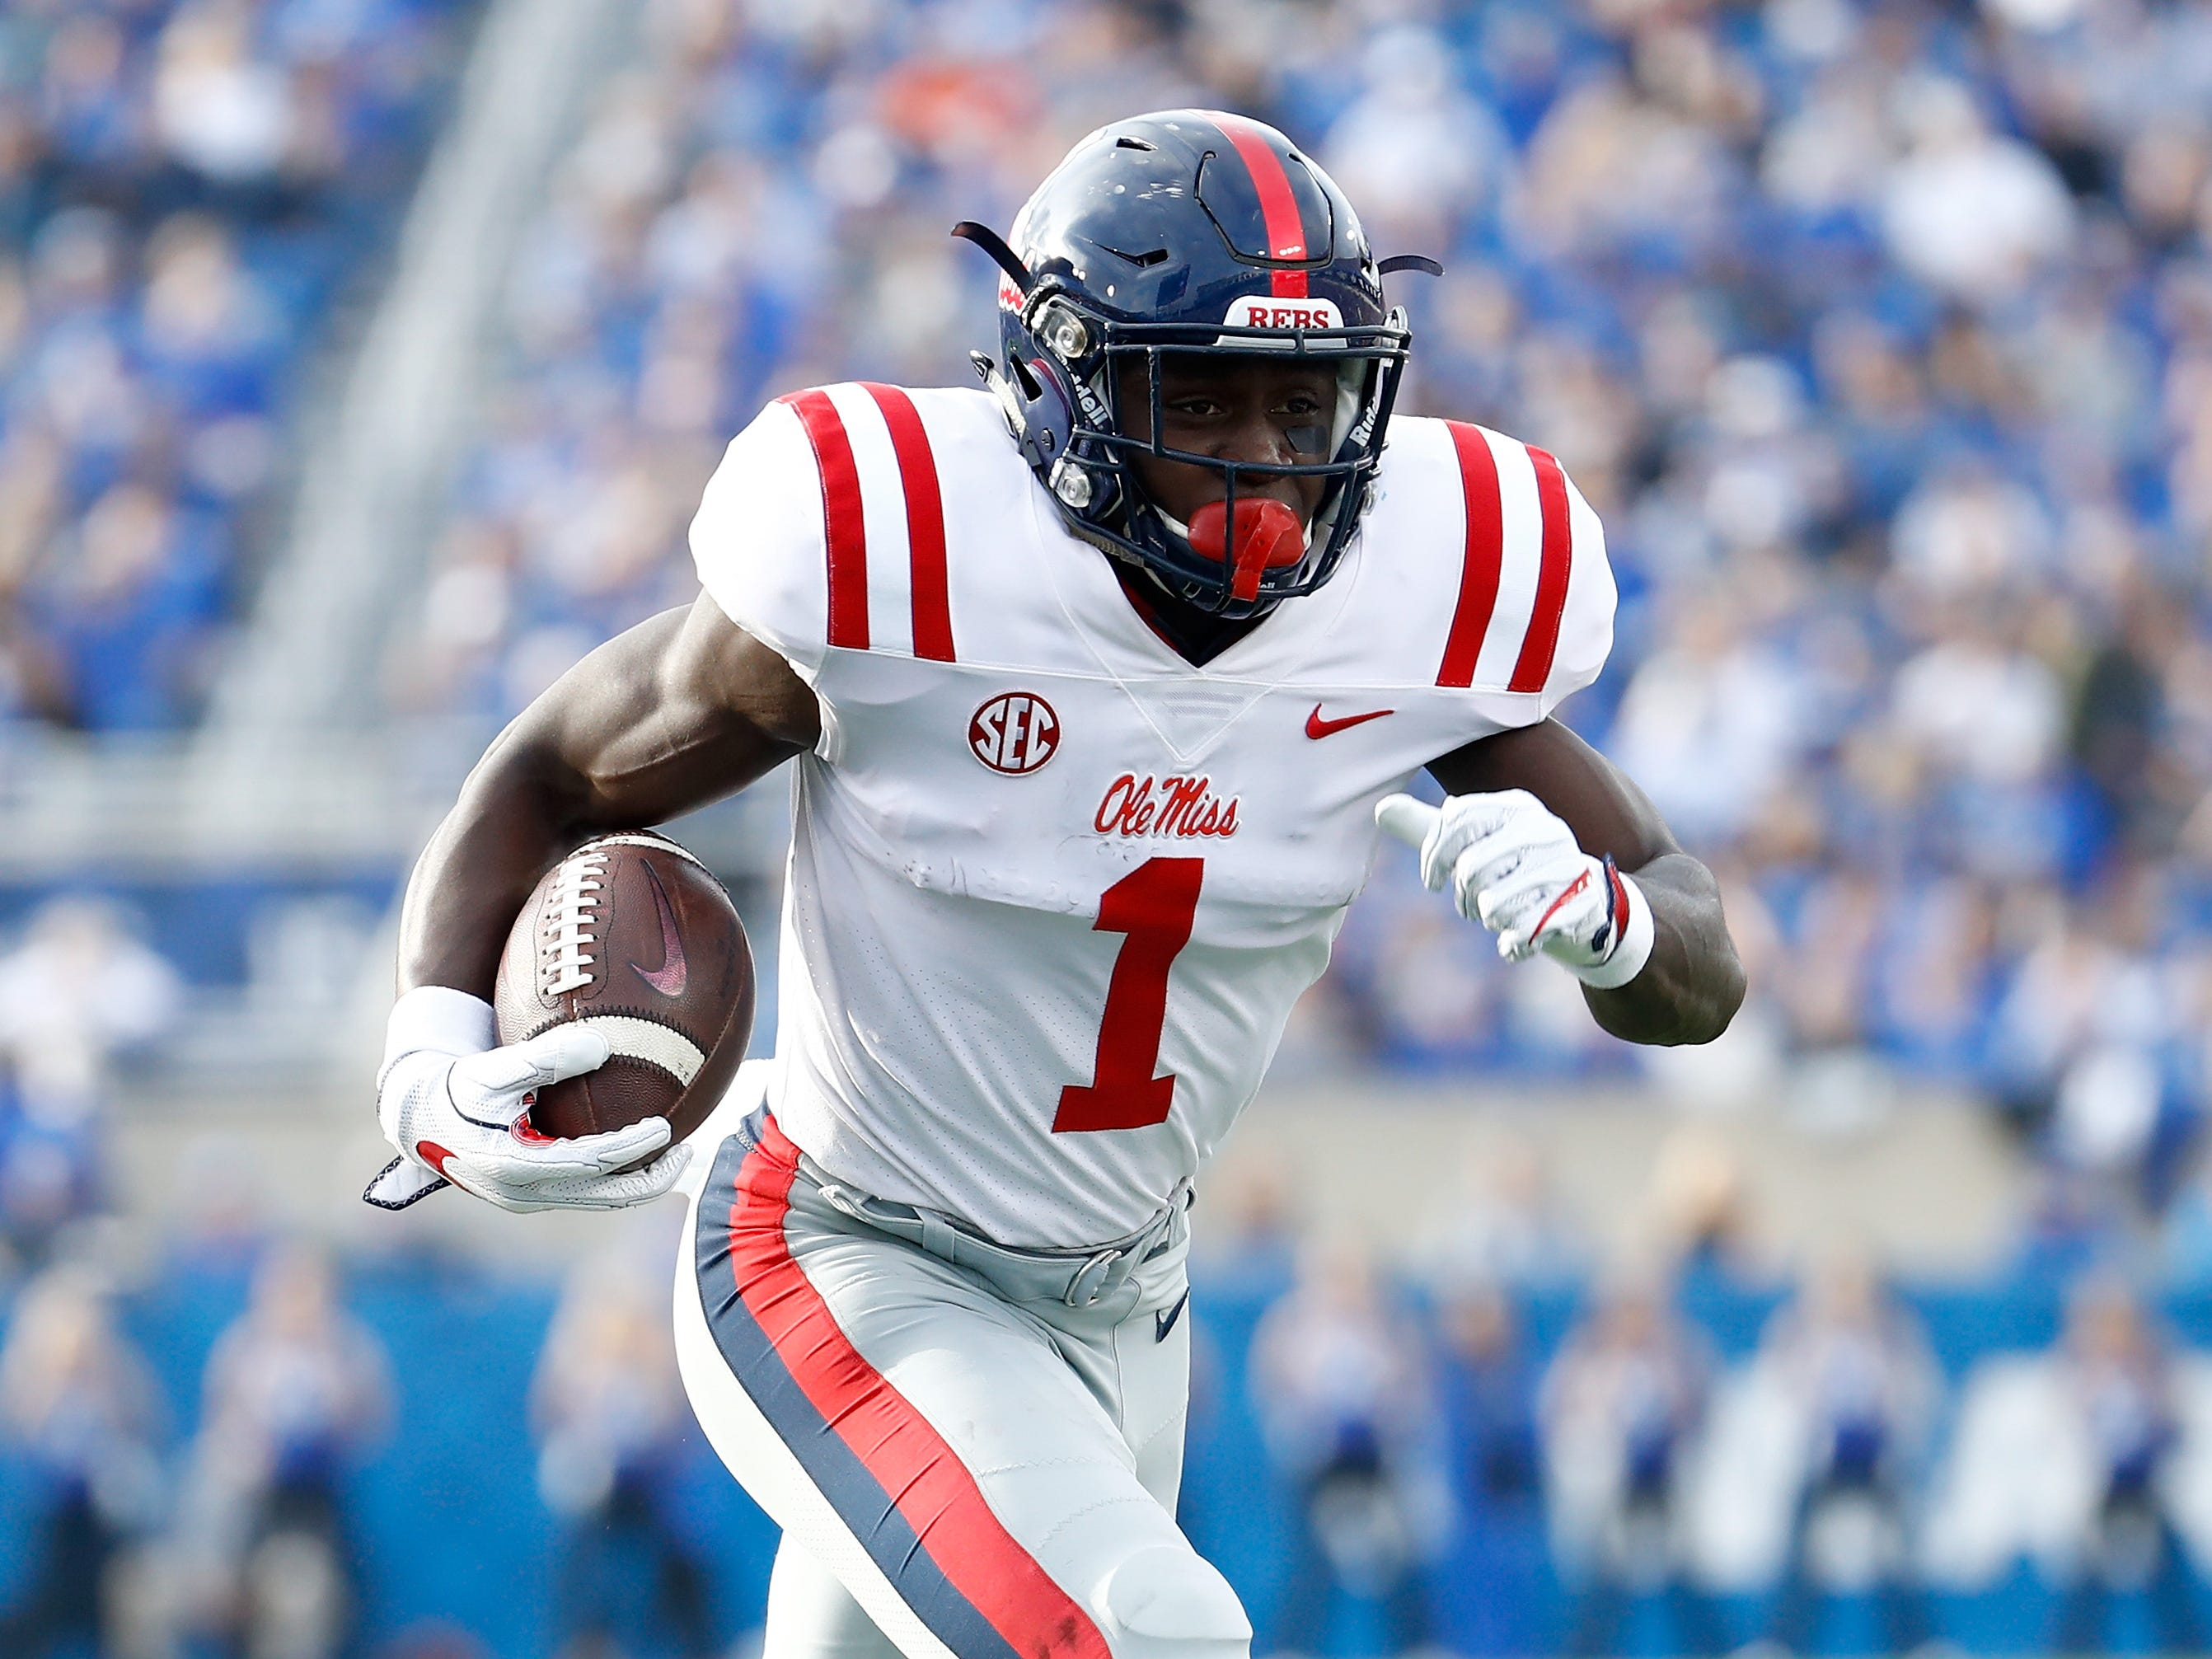 37. A.J. Brown, WR, Ole Miss: A sturdy-bodied receiver with limbs that allow him to play bigger than his 6-foot-1 frame. Brown put up big numbers this season, catching 85 passes for 1,320 and six scores. He brings added versatility, frequently working out of the slot for Ole Miss.